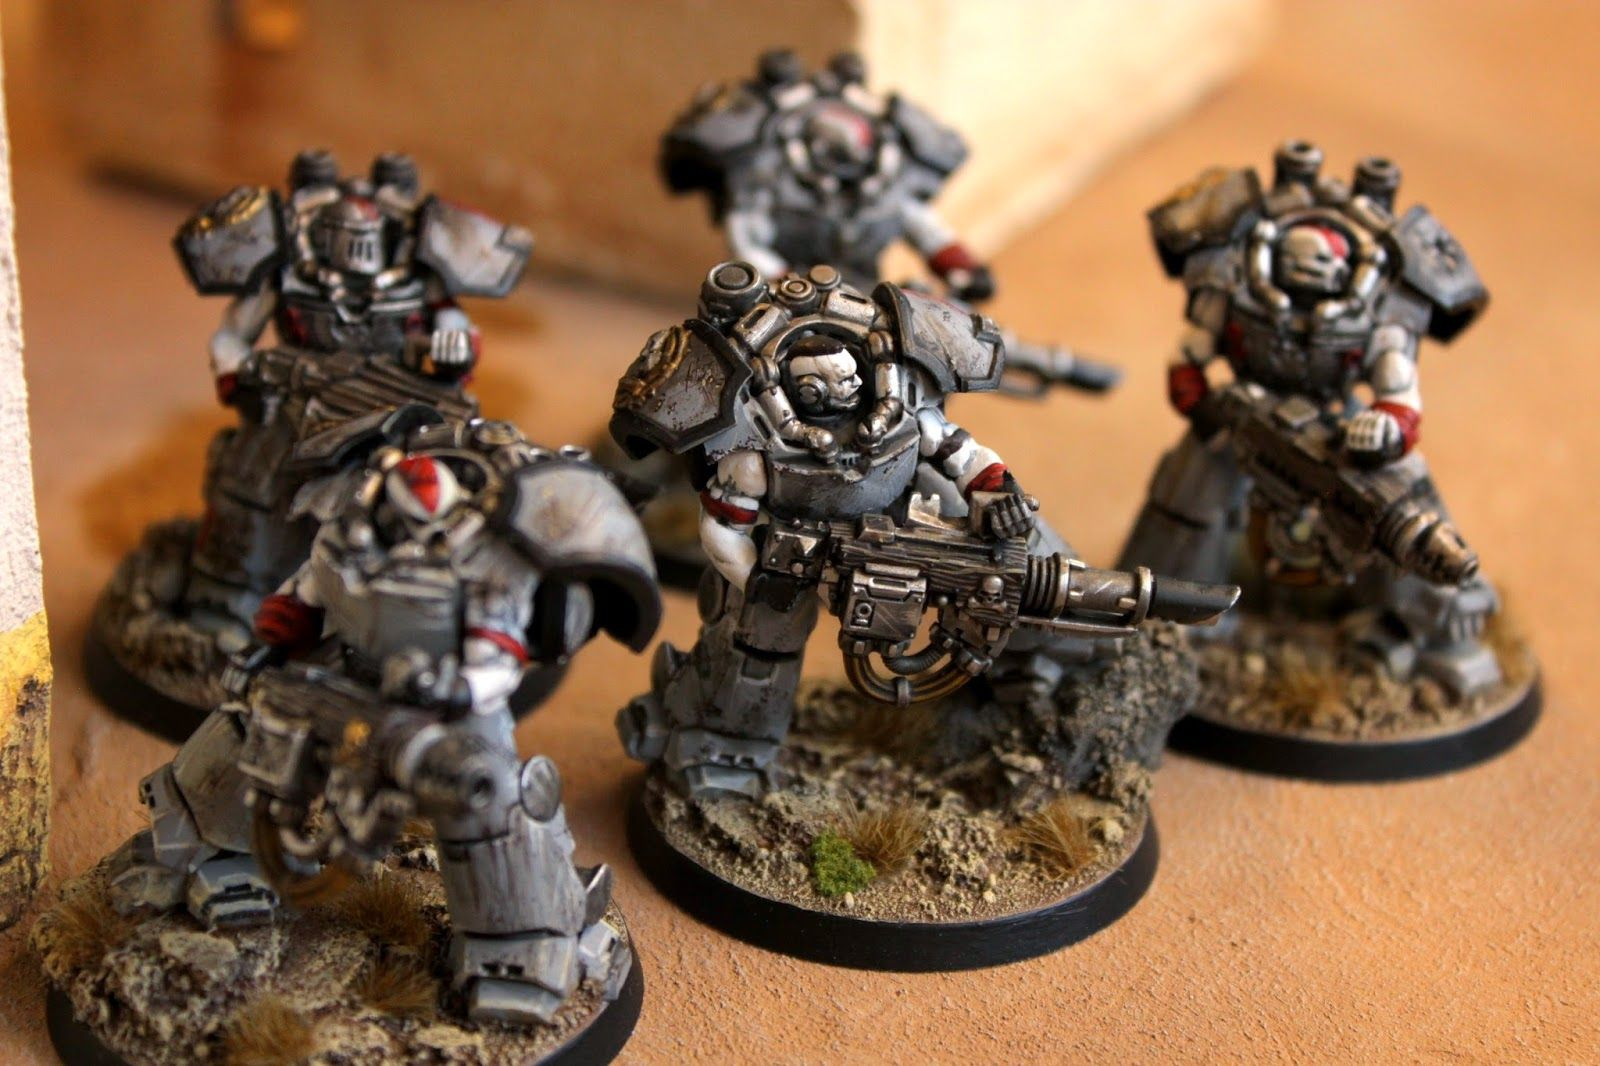 Hobby adventures with miniature soldiers, model scenery and